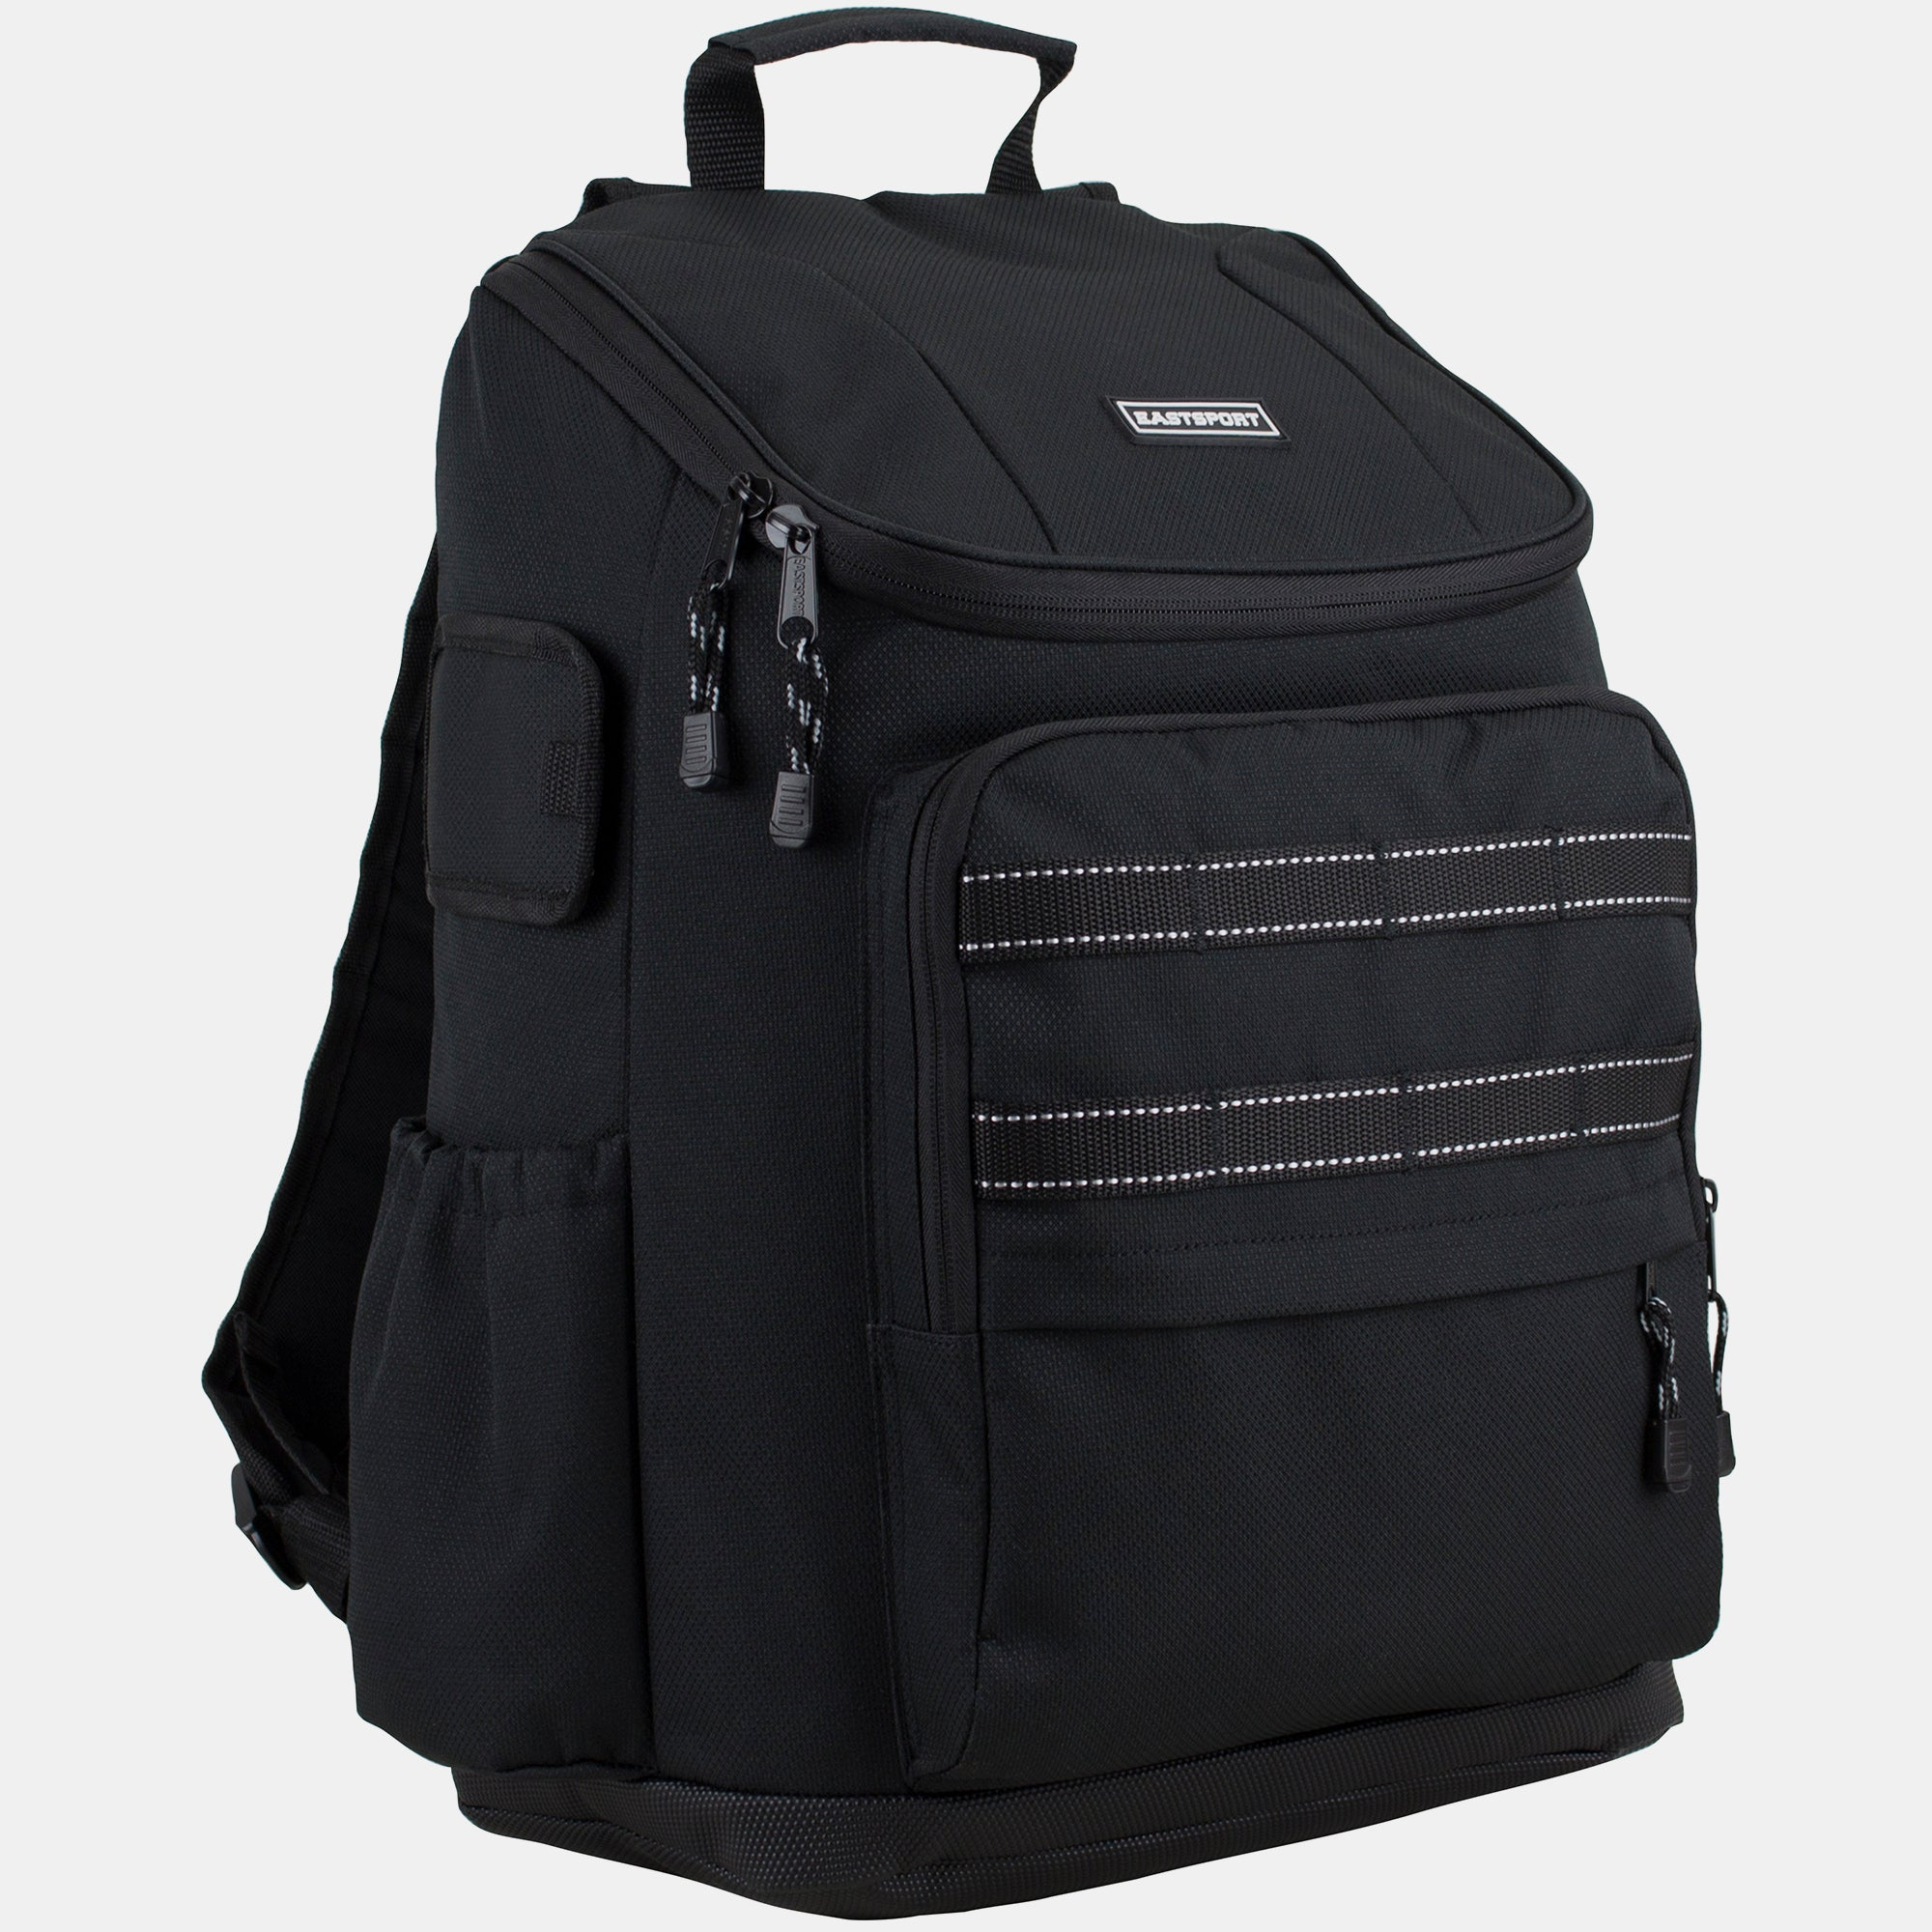 Eastsport Outdoor Voyager Backpack